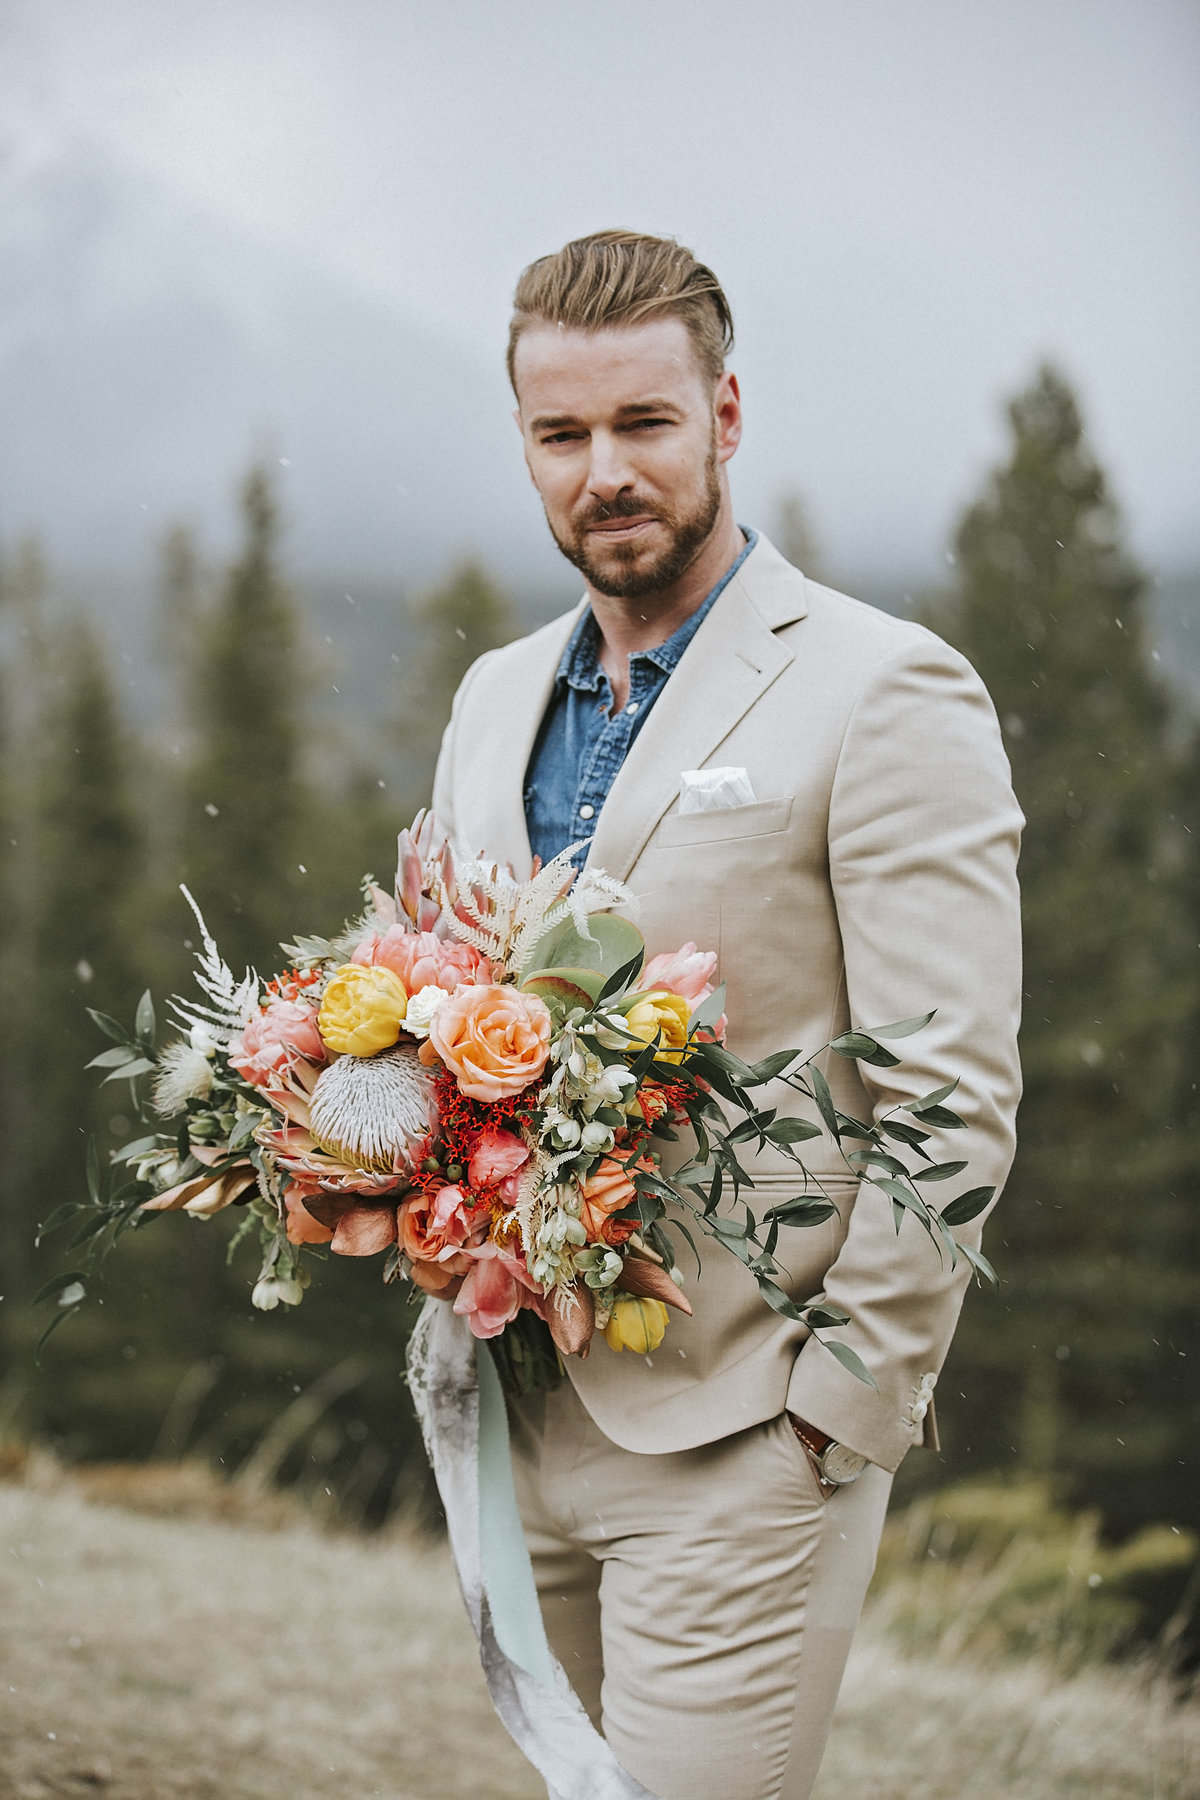 Mountain wedding groom holding luxurious floral bouquet